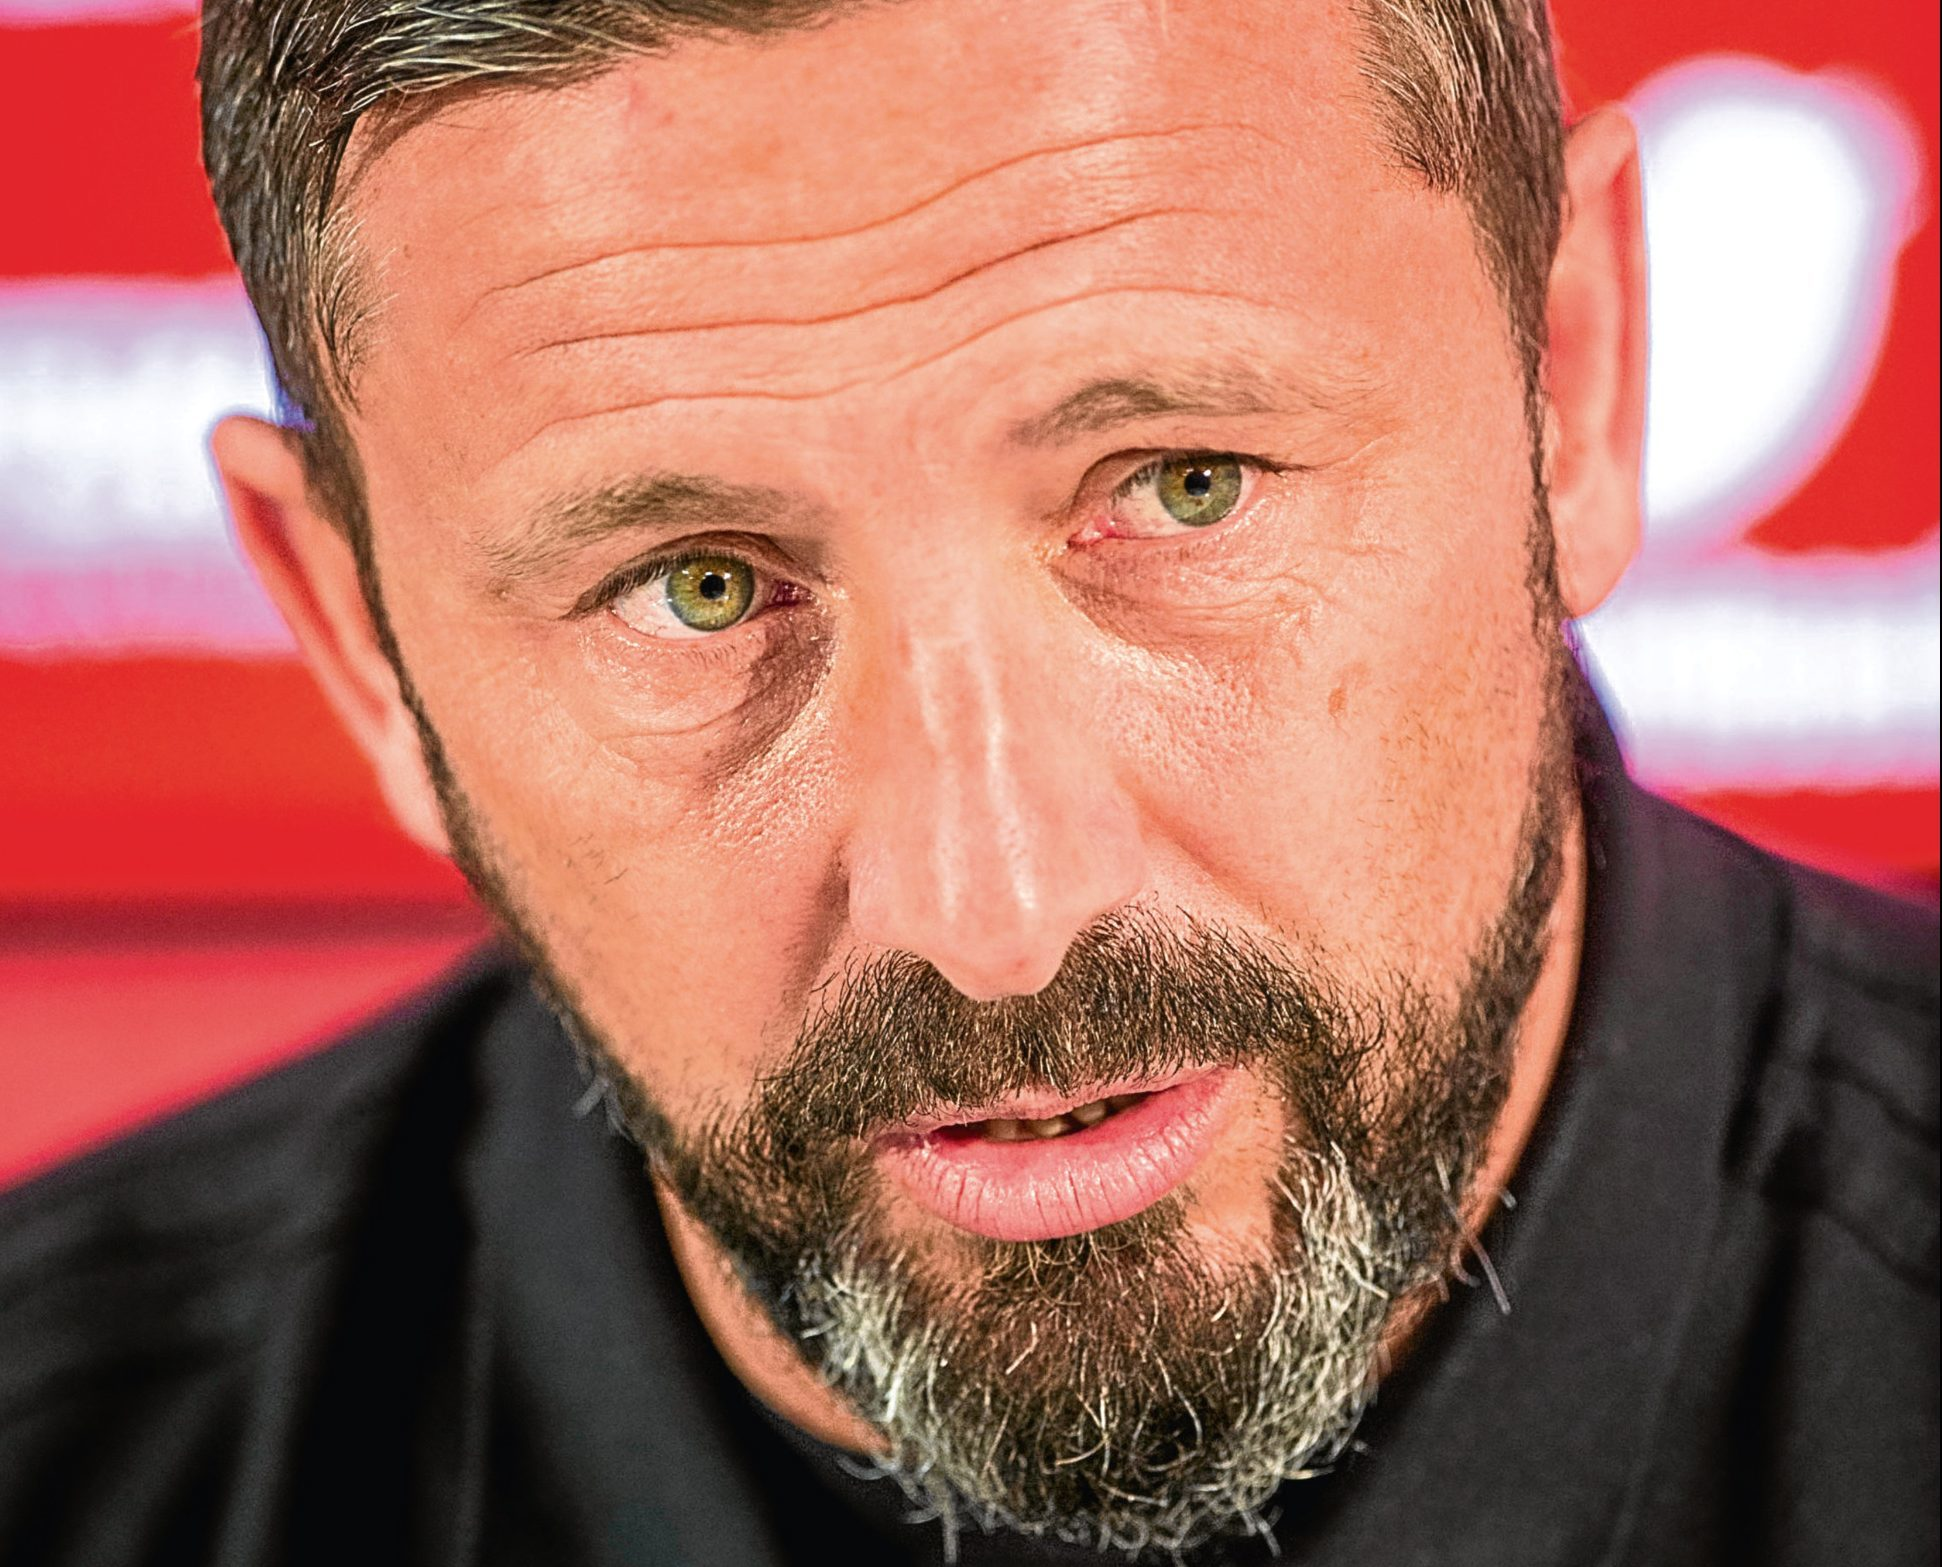 Aberdeen manager Derek McInnes is identifying targets for the summer.